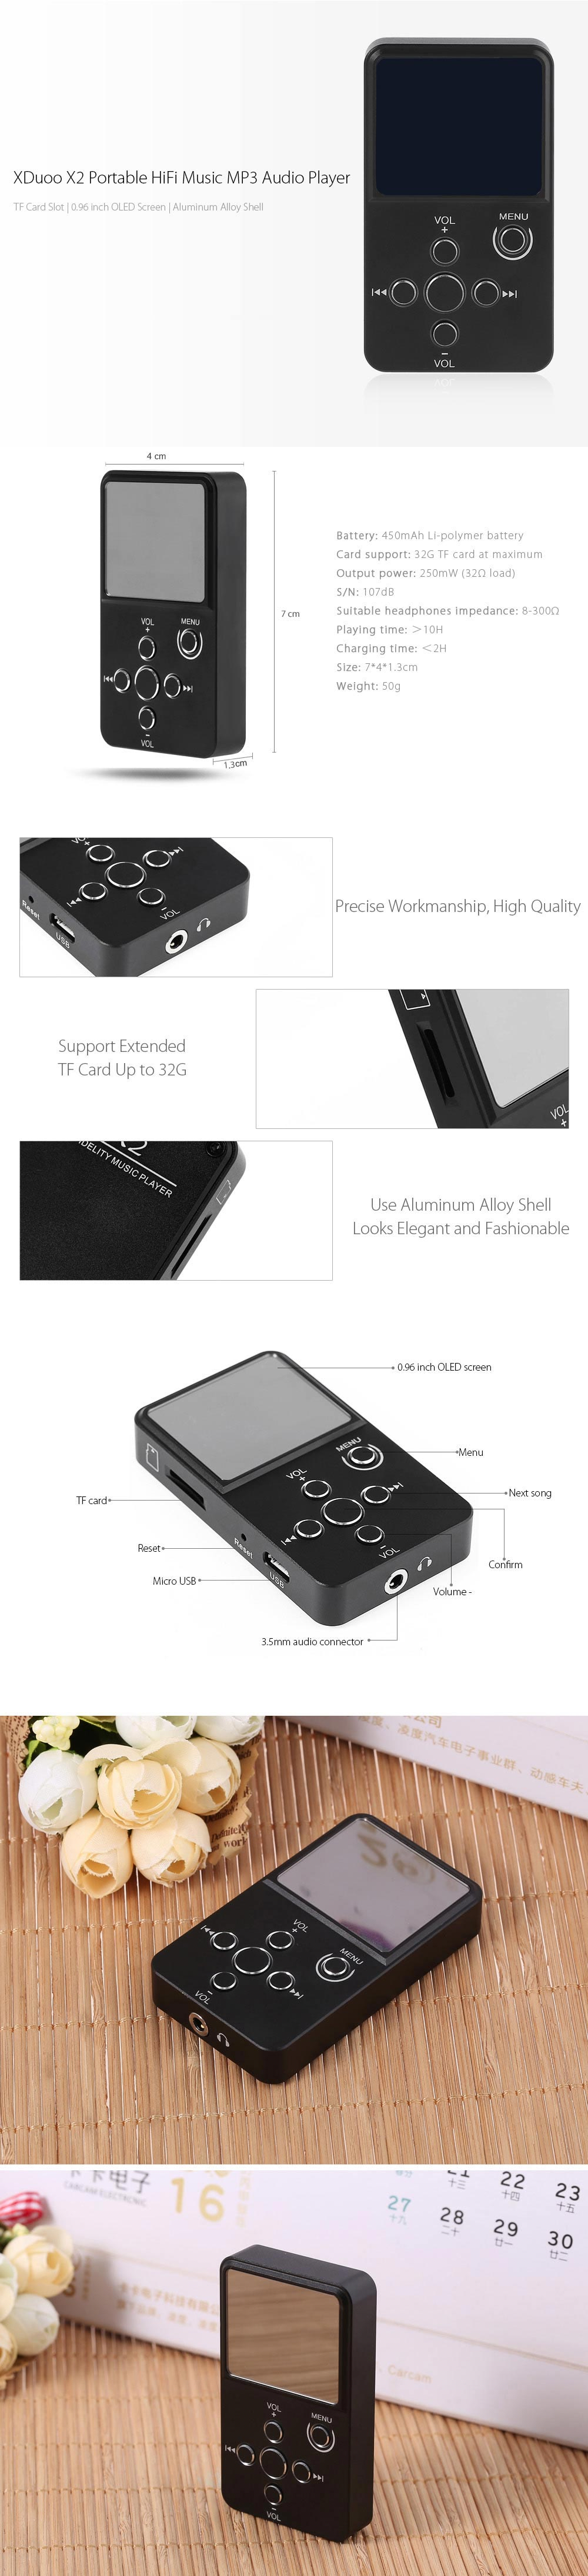 XDuoo X2 HiFi Digital Audio Player MP3 with OLED Screen TF Card Slot Aluminum Alloy Housing